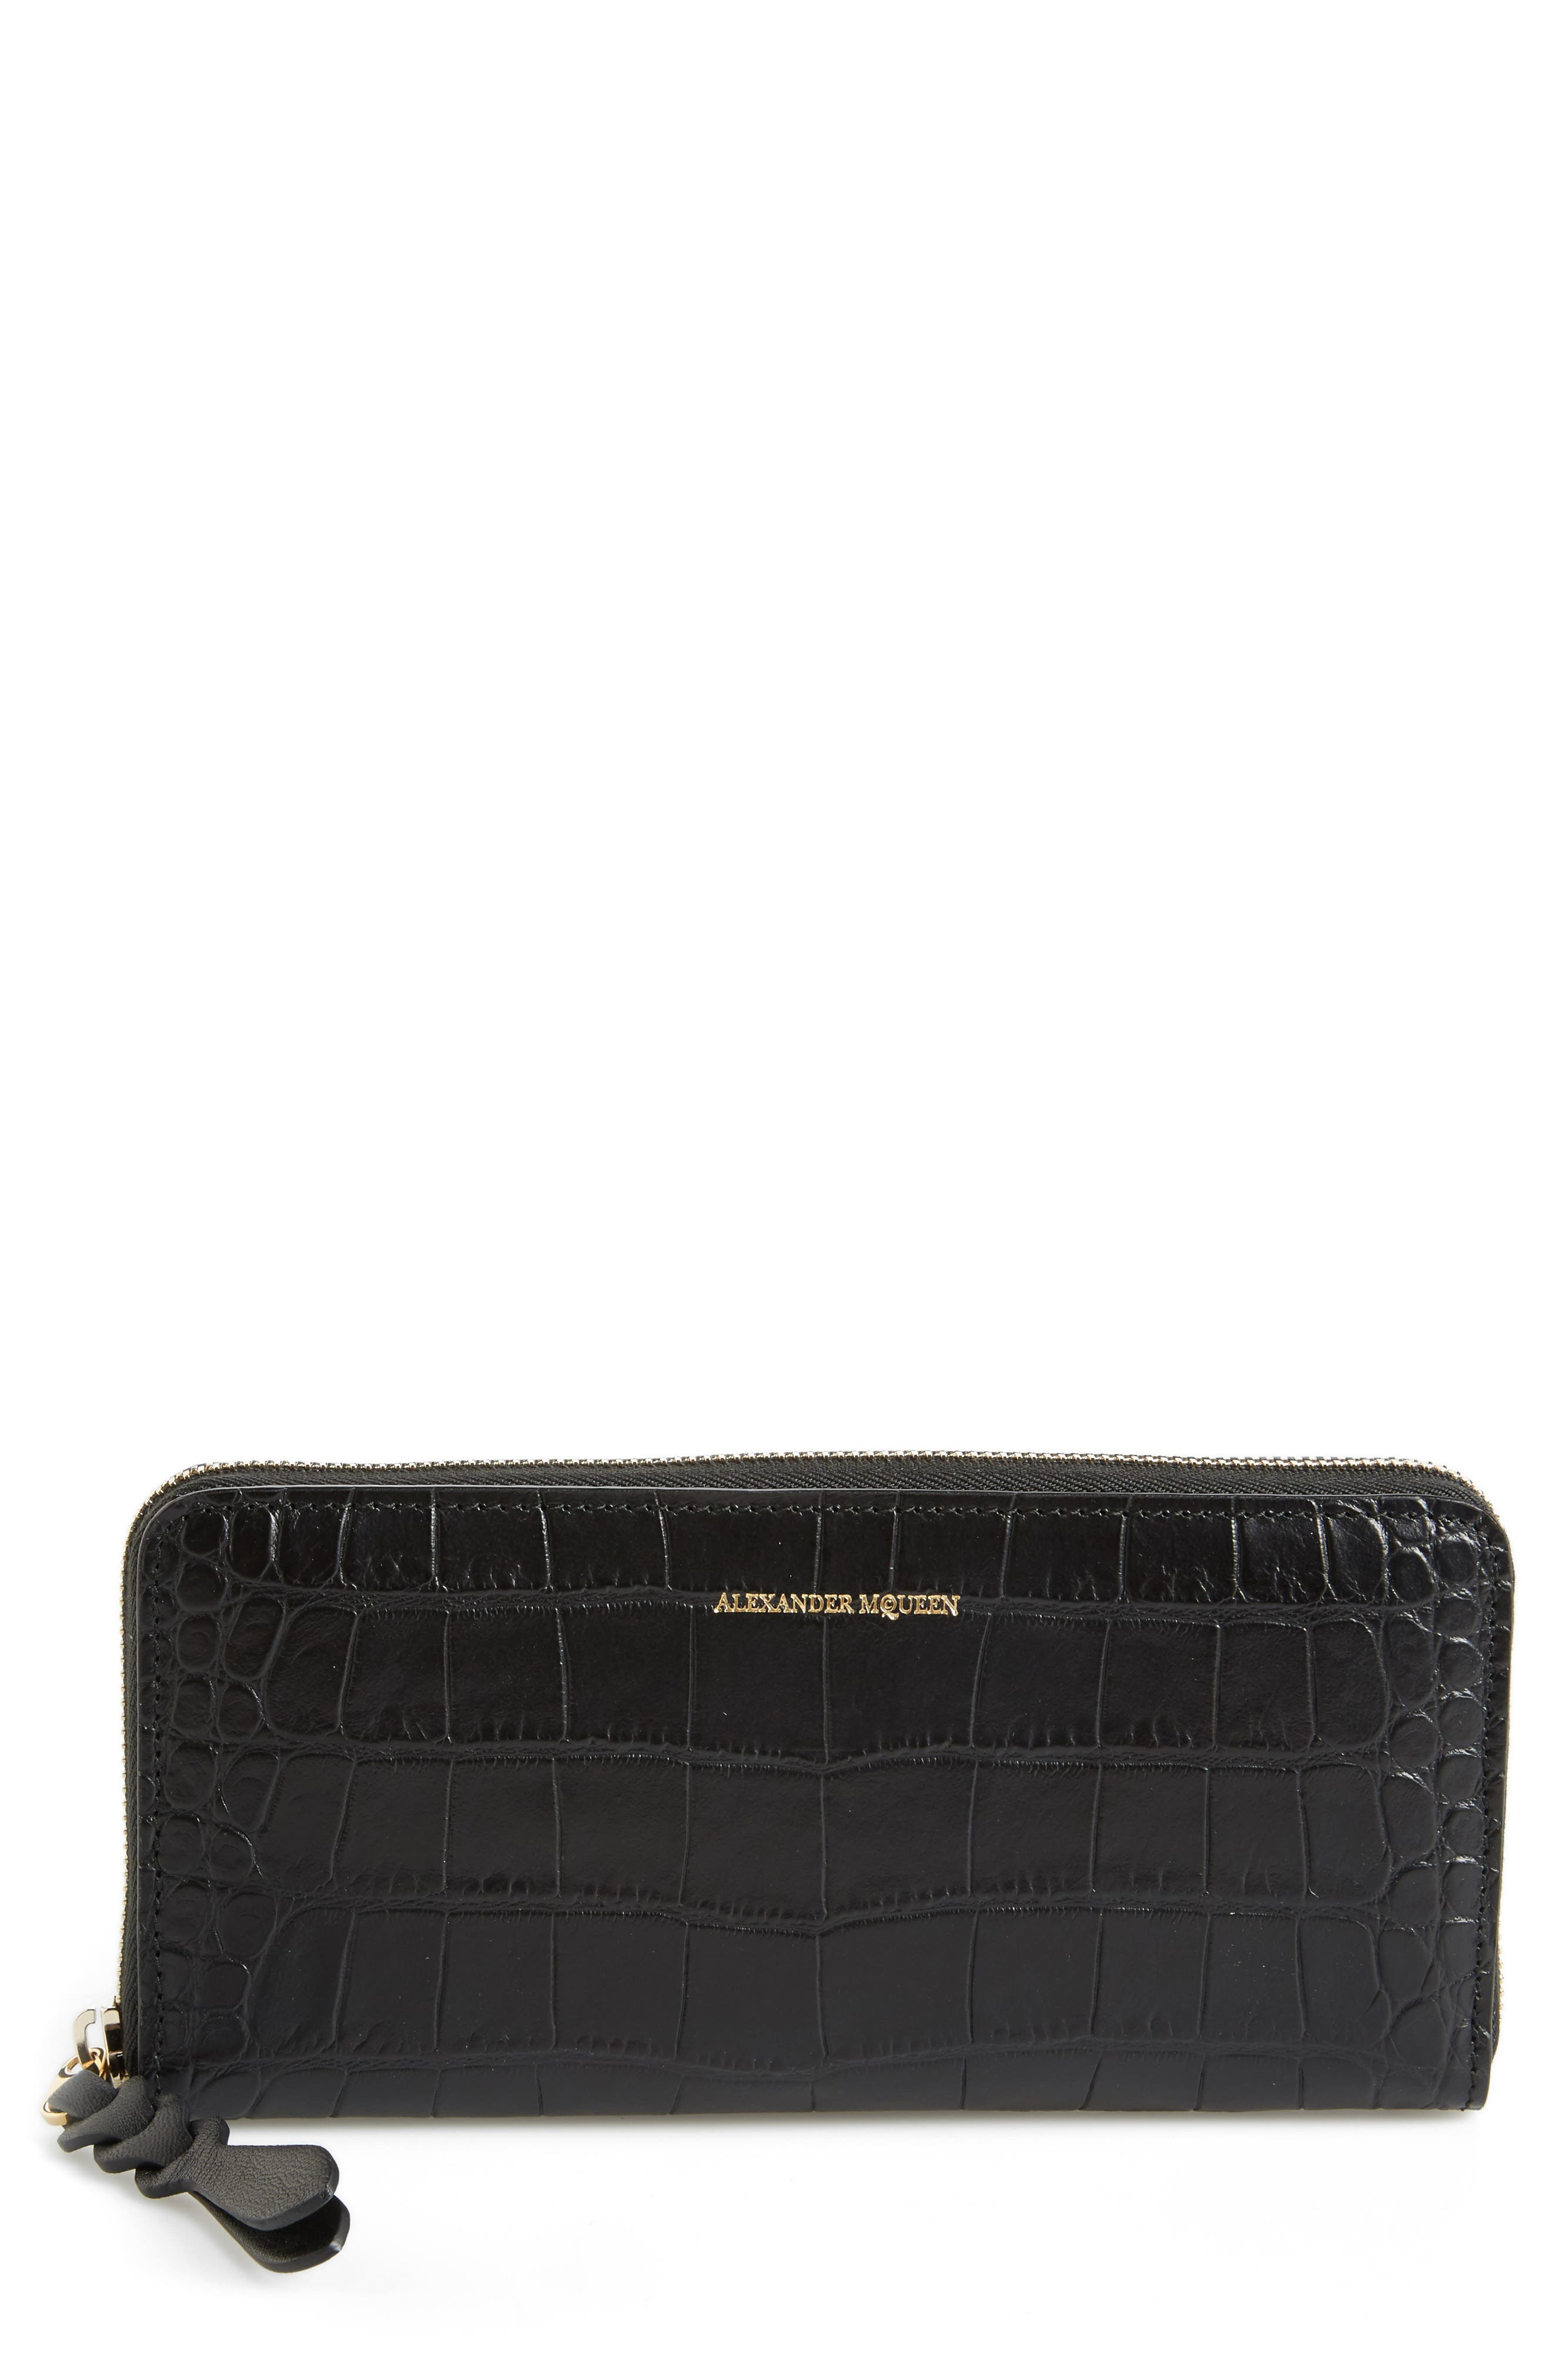 Croc-Embossed Leather Zip Around Wallet,                             Main thumbnail 1, color,                             Black